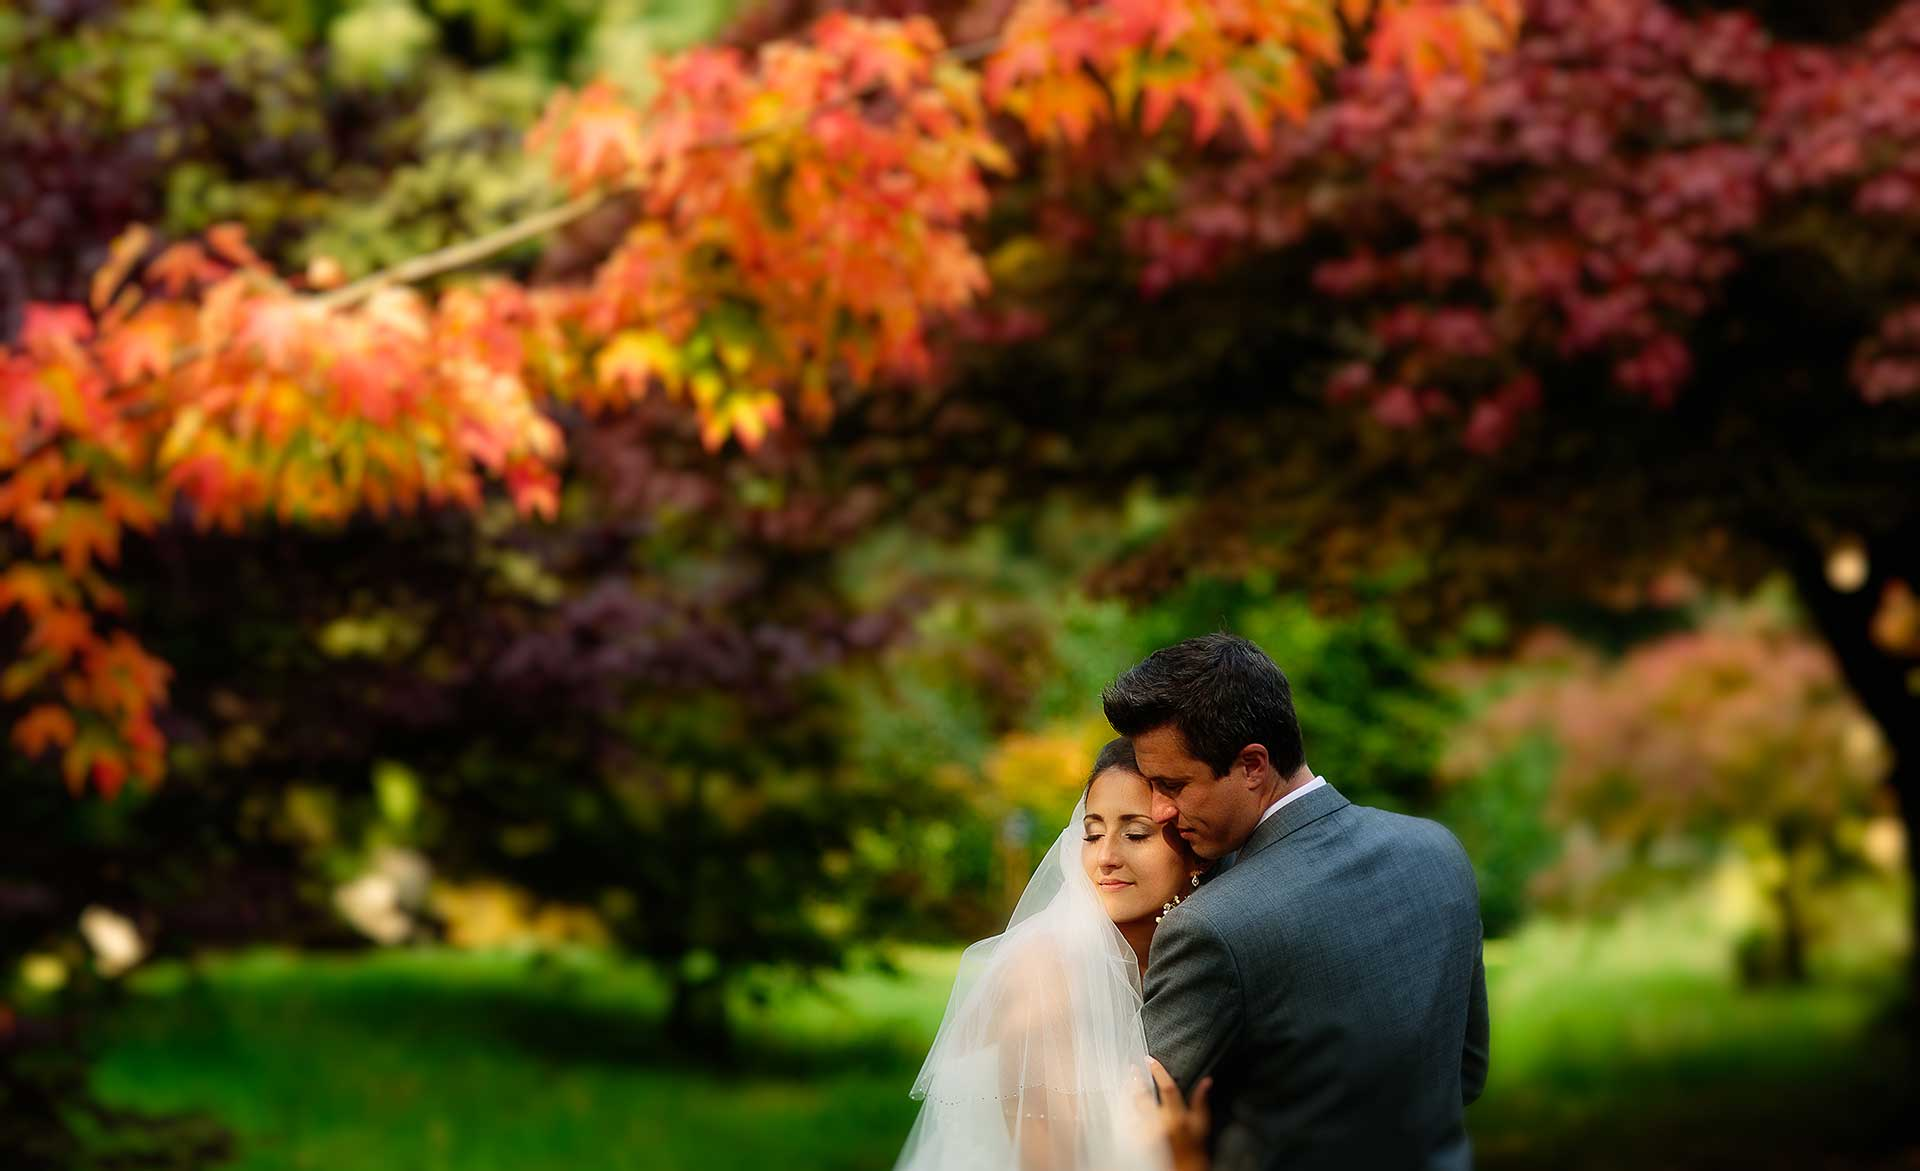 Stunning autumn colours with the bride and groom taken by Qualified Shropshire Wedding Photographer pbartworks at Comberemere Abbey